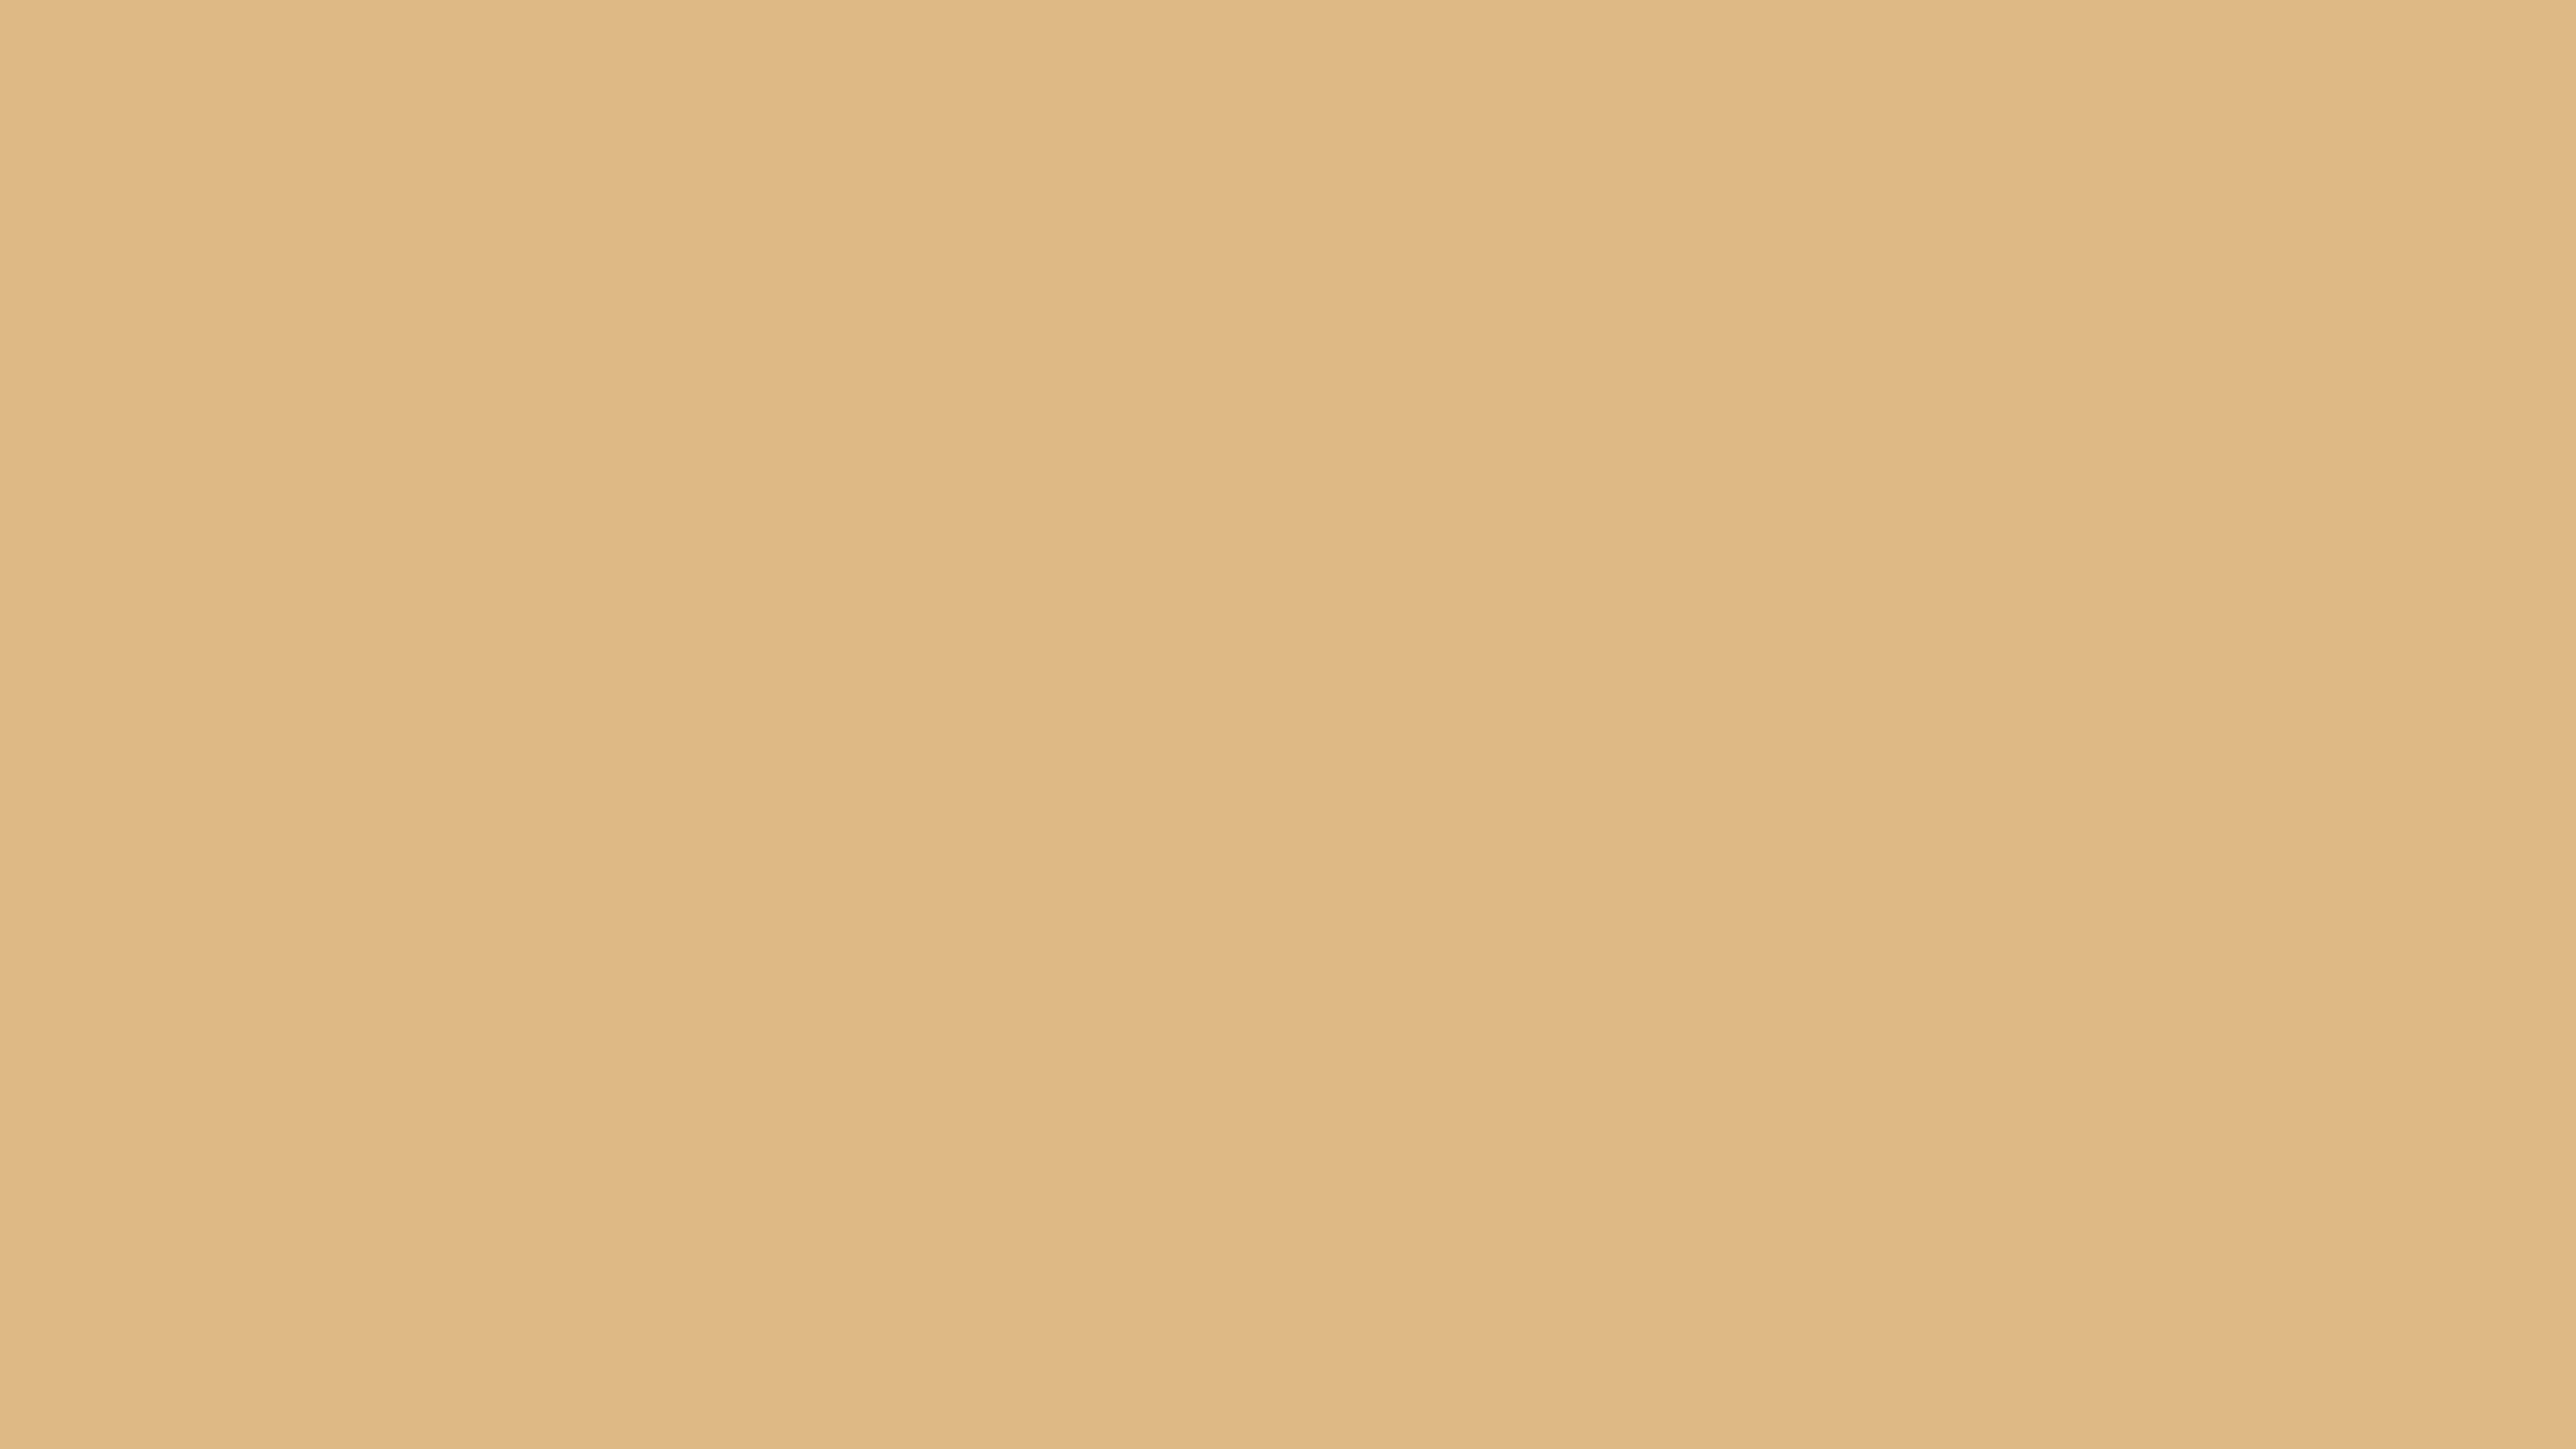 4096x2304 Burlywood Solid Color Background